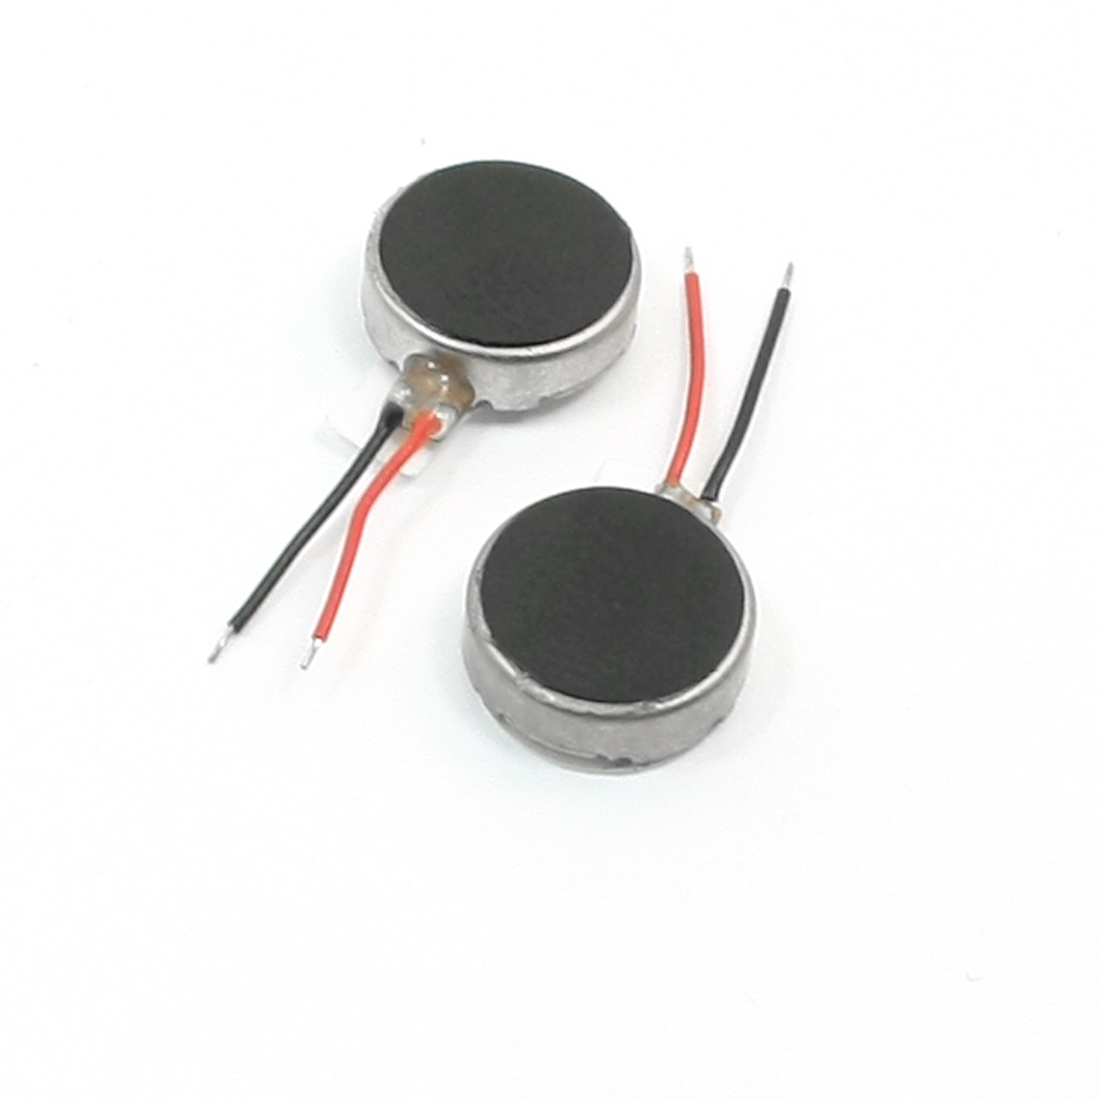 Cell-Phone-Coin-Type-Mini-Vibration-Motor-13000RPM-10mm-x-3mm-2Pcs